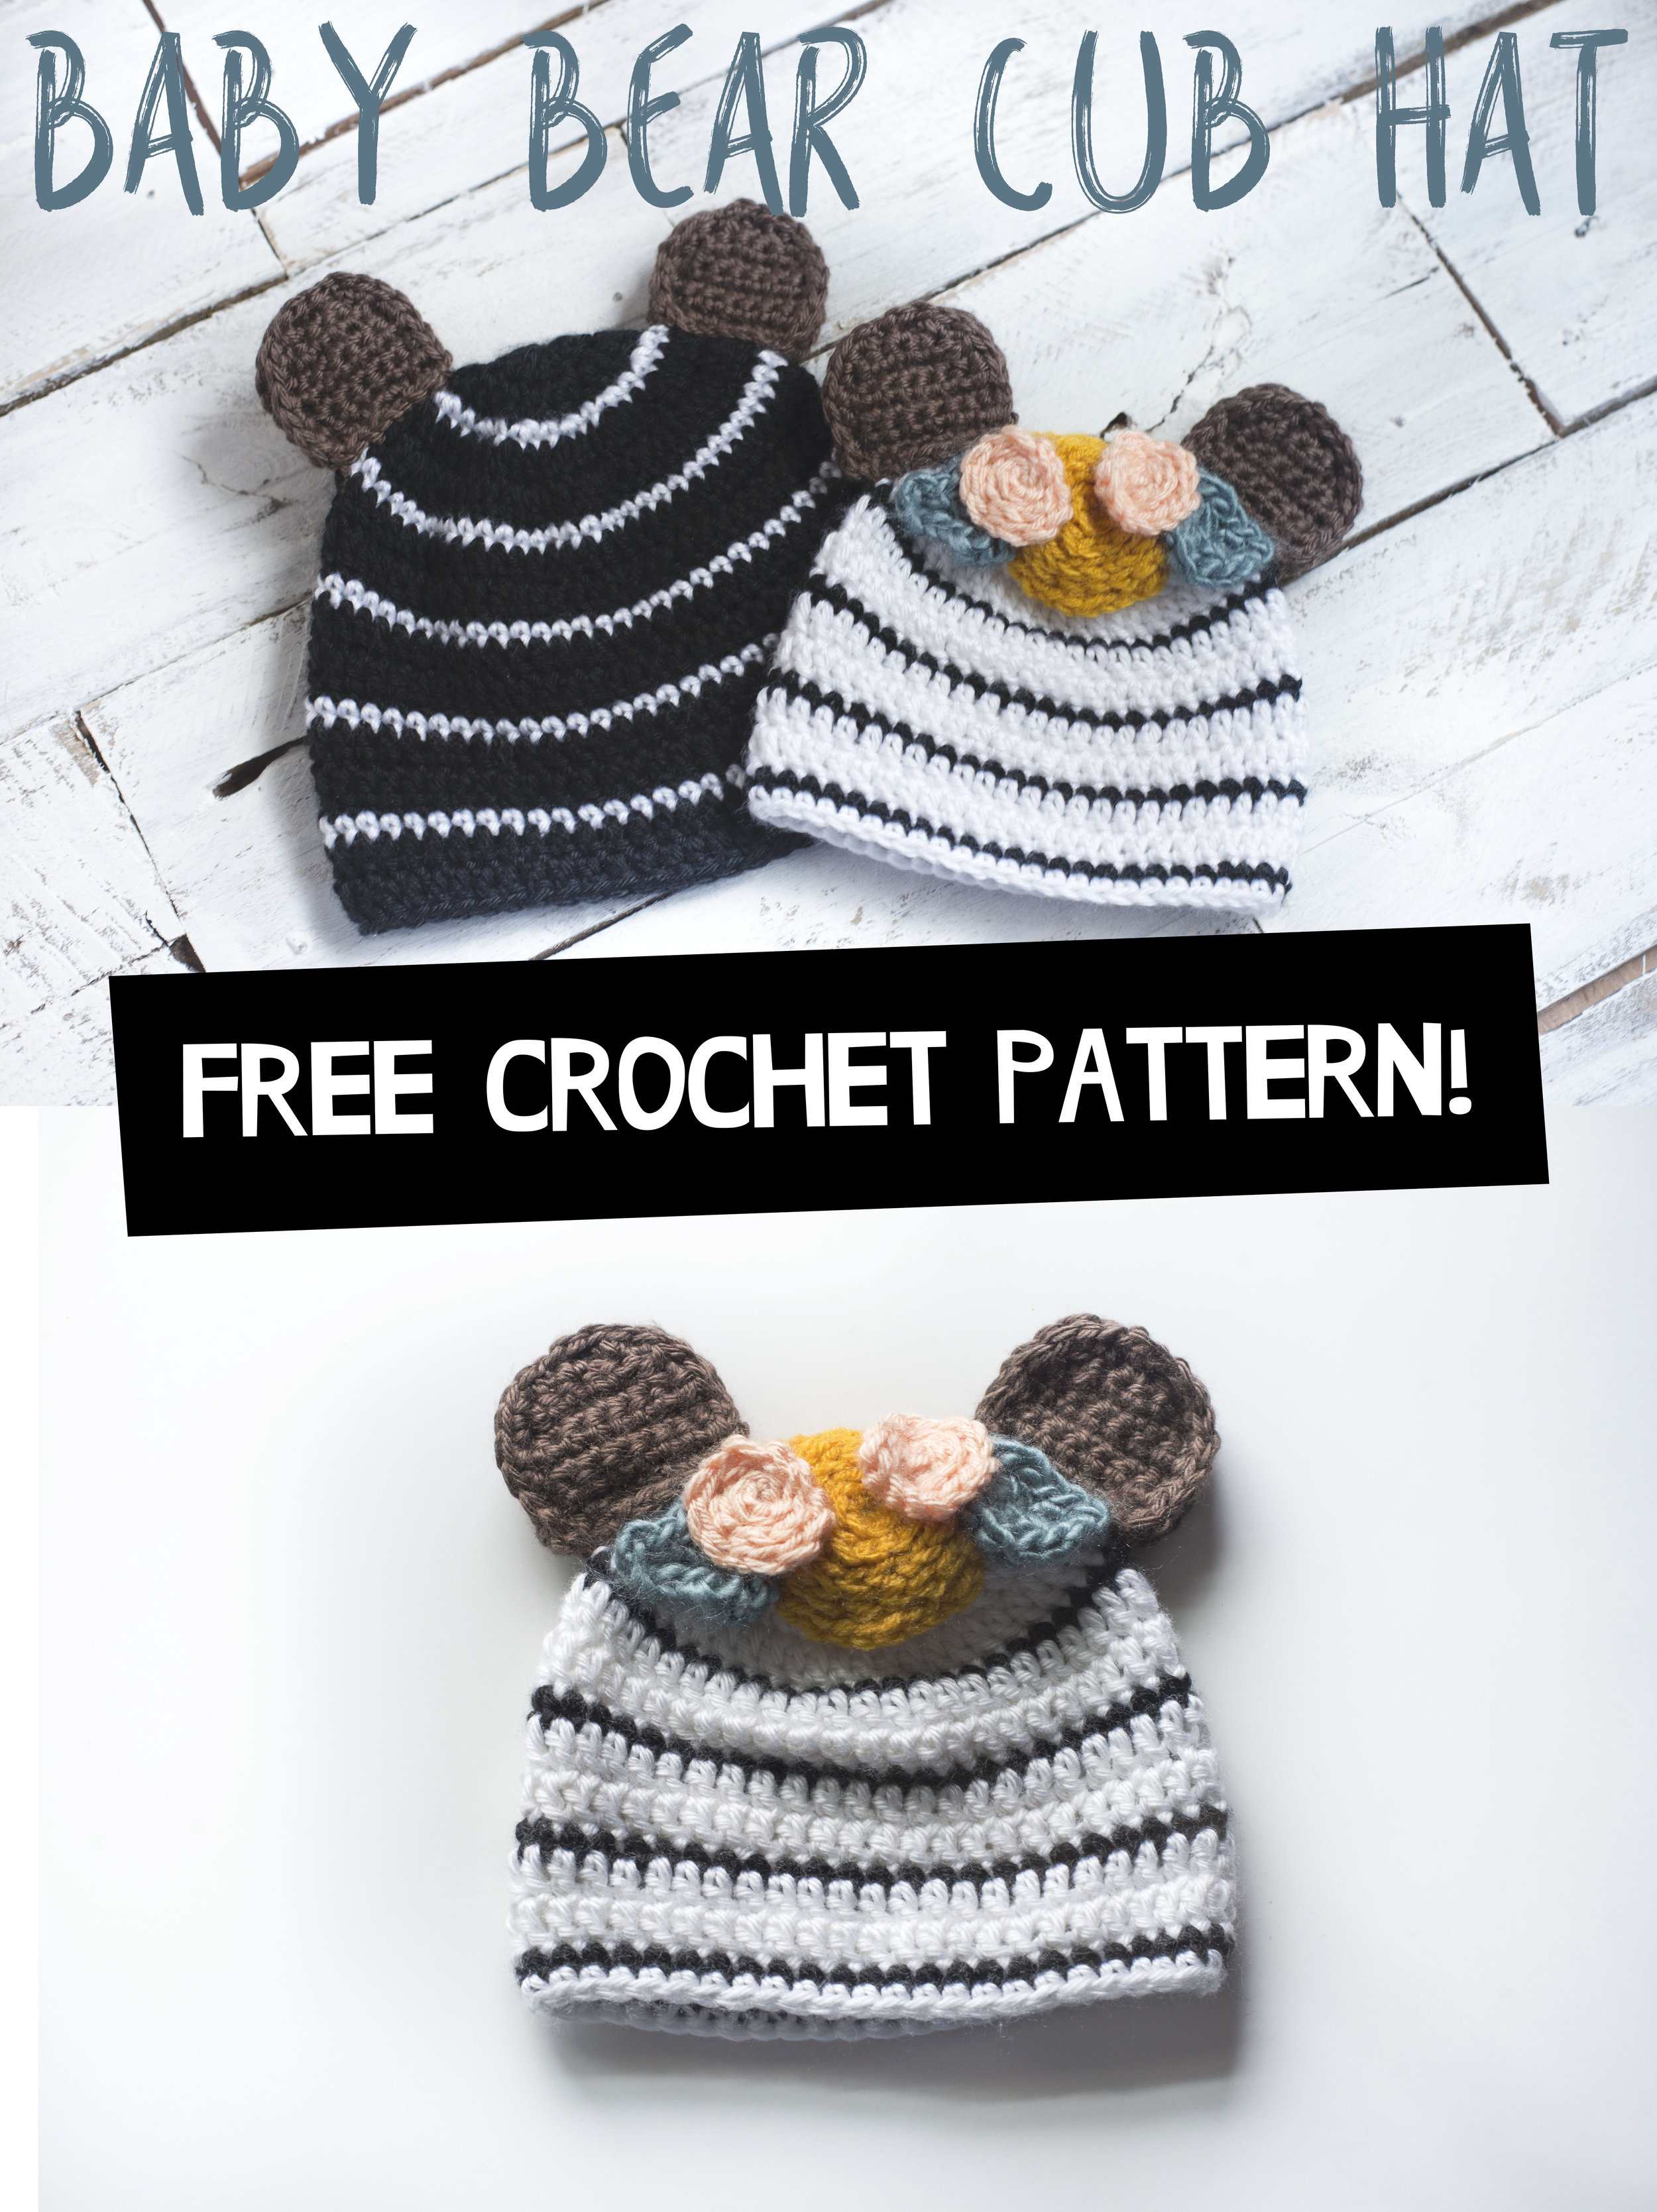 Free Crochet Patterns and Designs by LisaAuch: Cute Easy Quick ... | 1335x1000